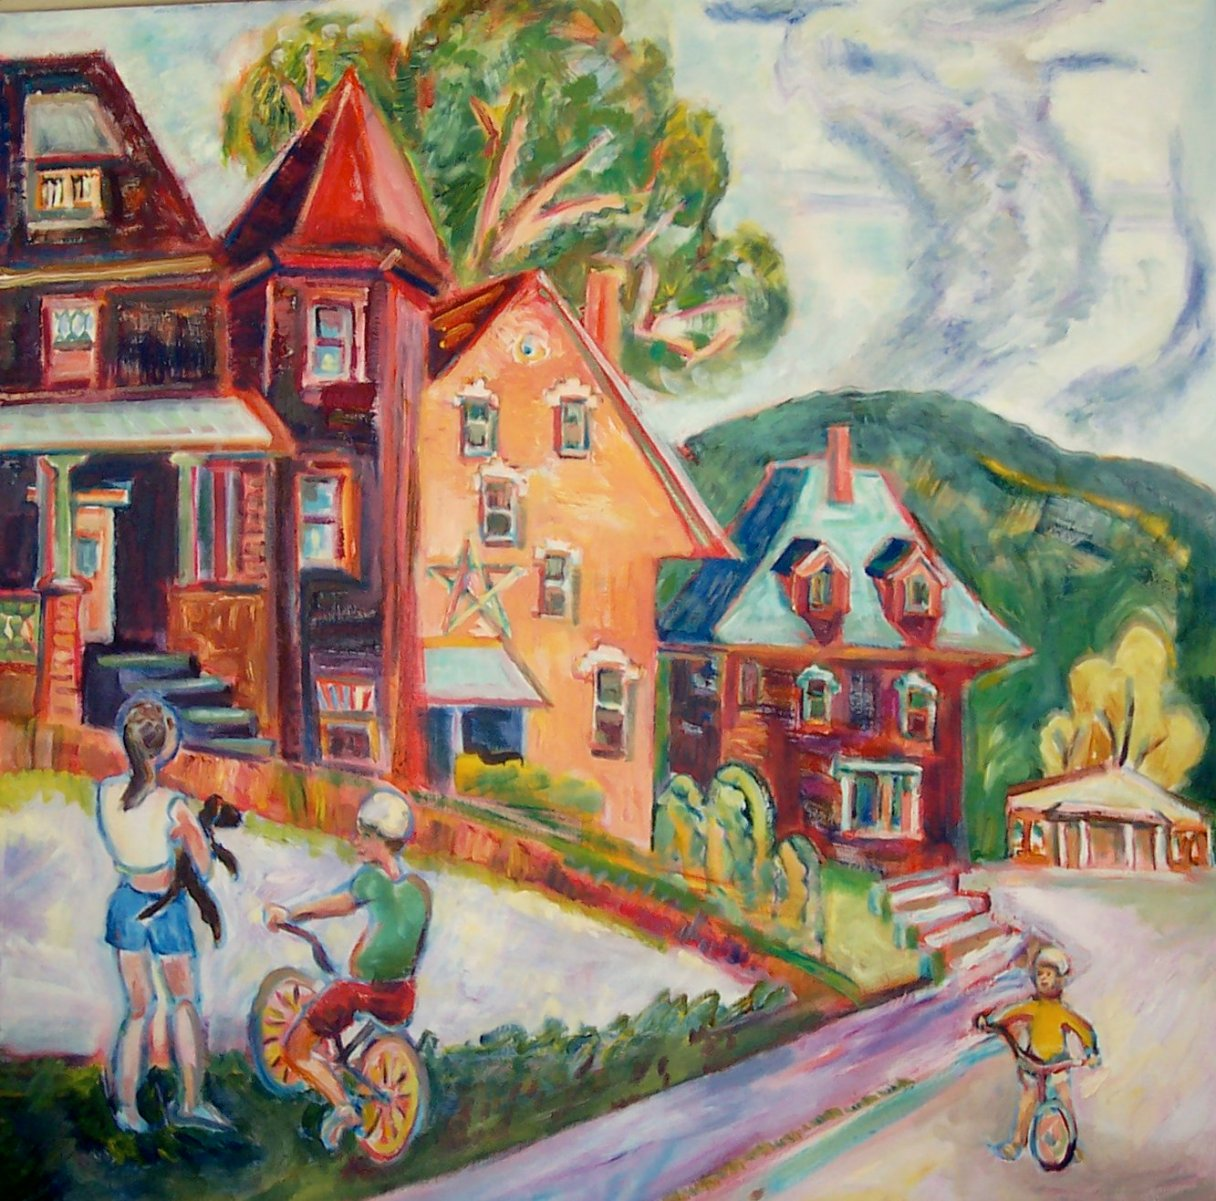 Last Day of Summer, Strathglas, Rumford, Maine, 2006, Diana Young, American b. 1936, 40 x 40 inches, acrylic on canvas, $2400